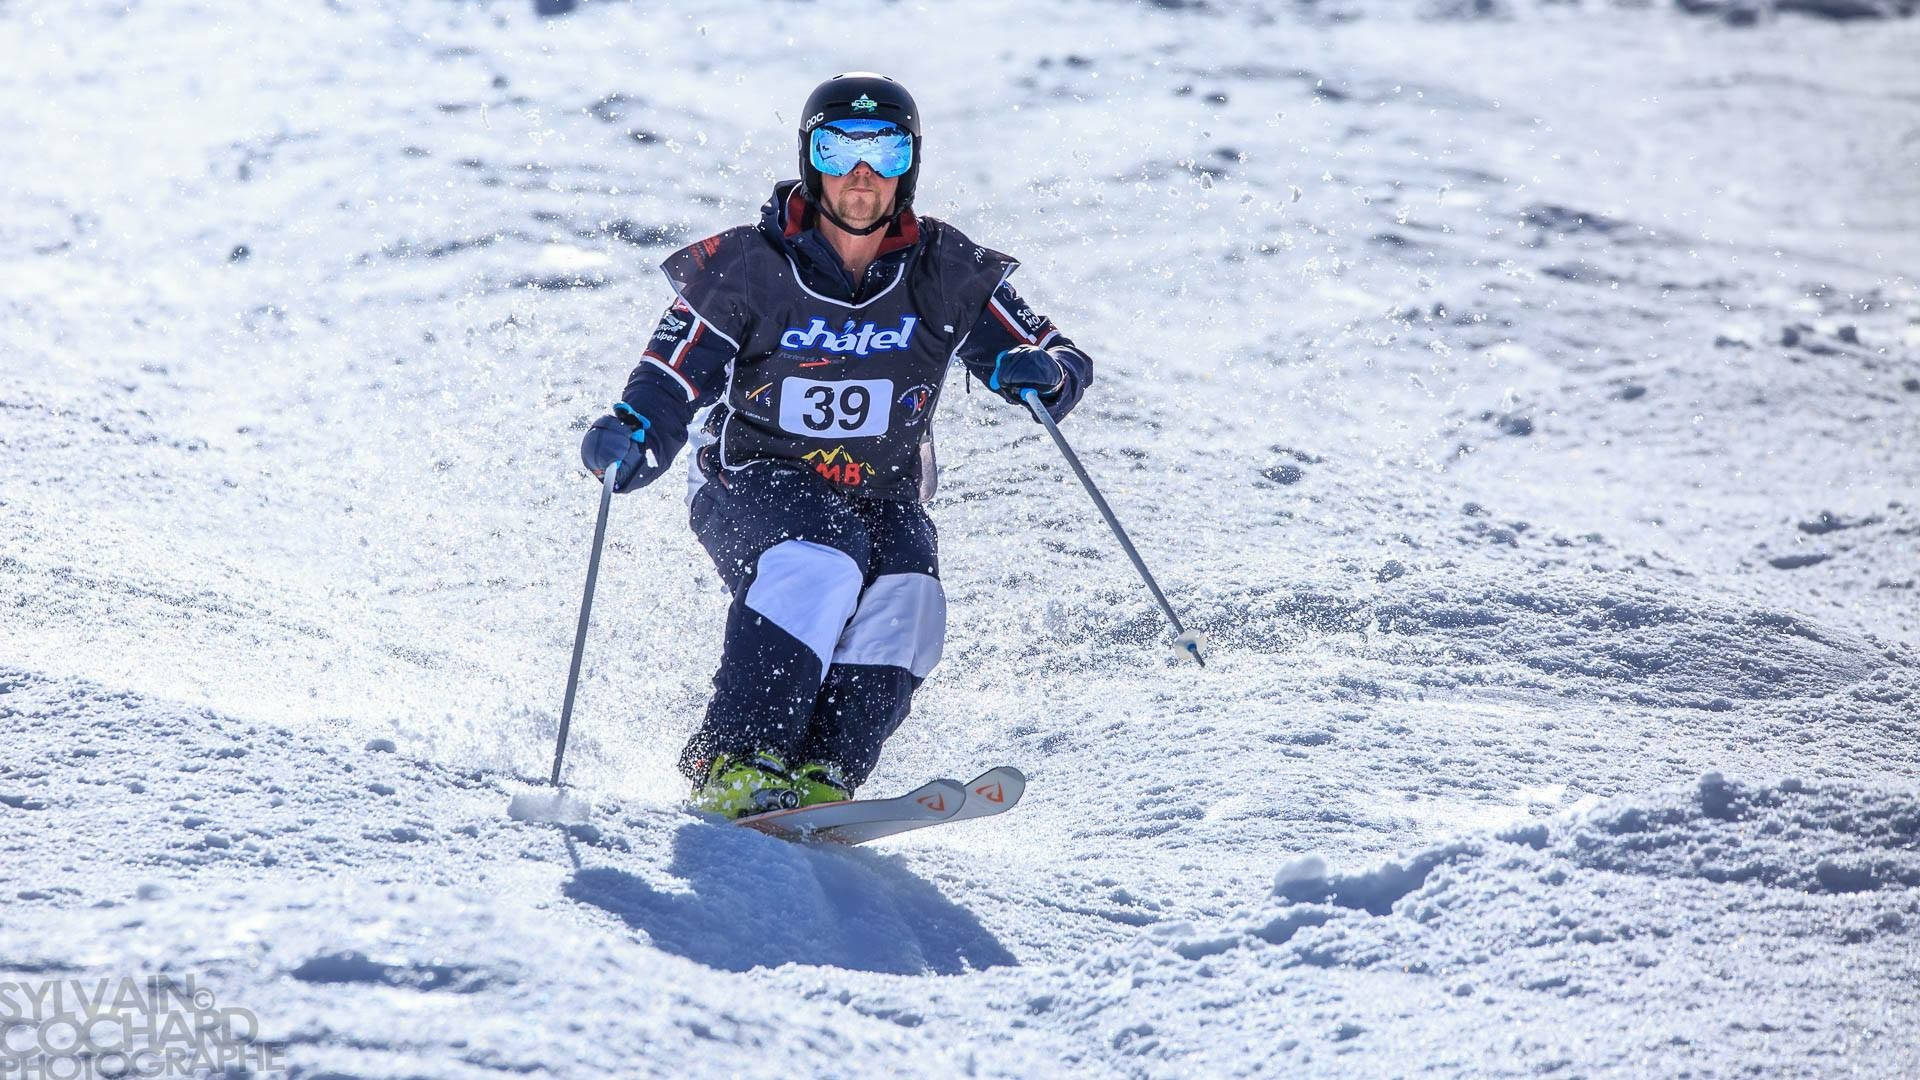 Tom Gerken-Schofield is among a talented crop of emgering moguls skiers from Britain ©BSS